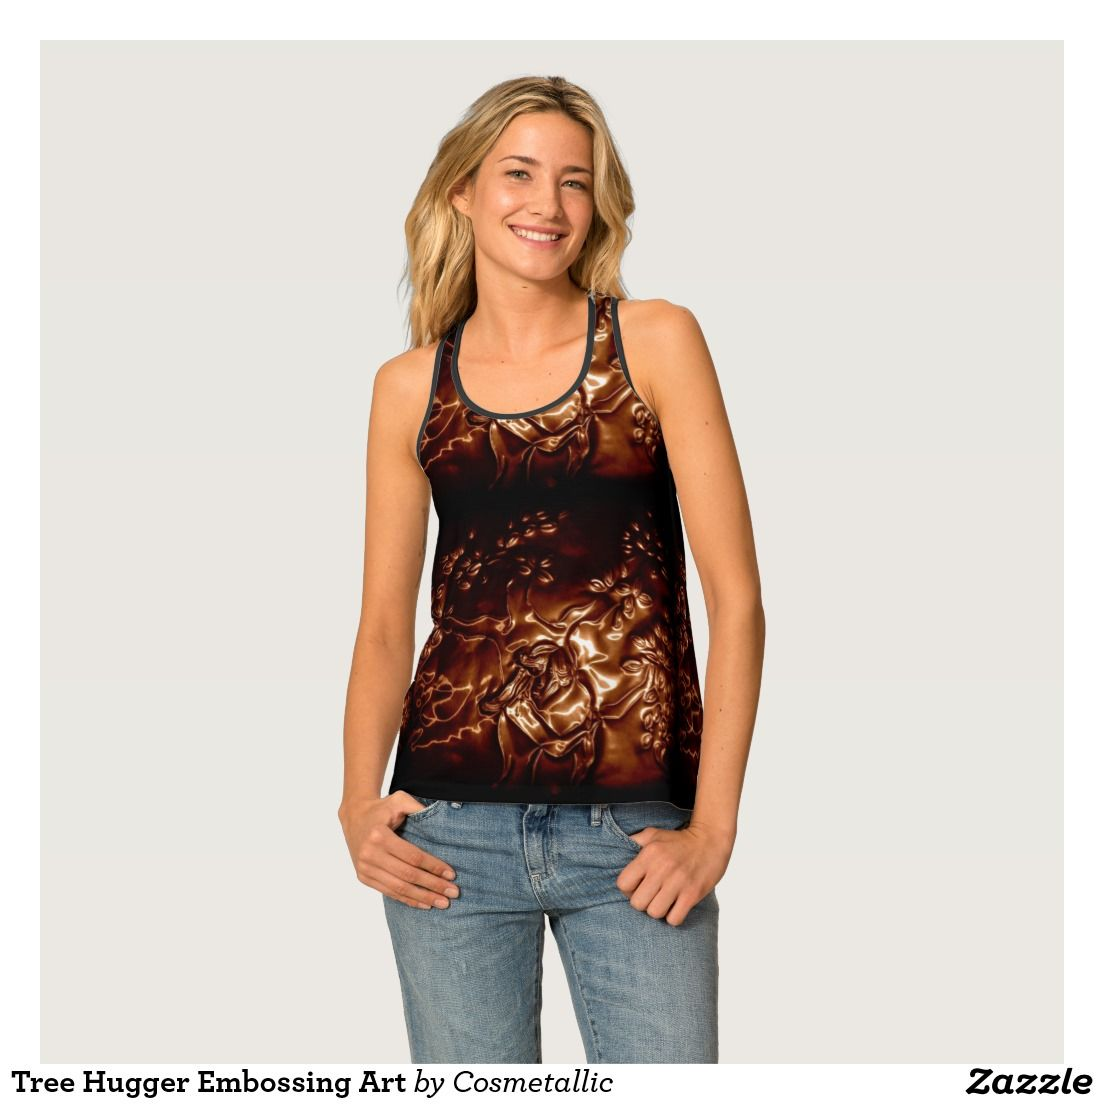 Tree Hugger Embossing Art Tank Top